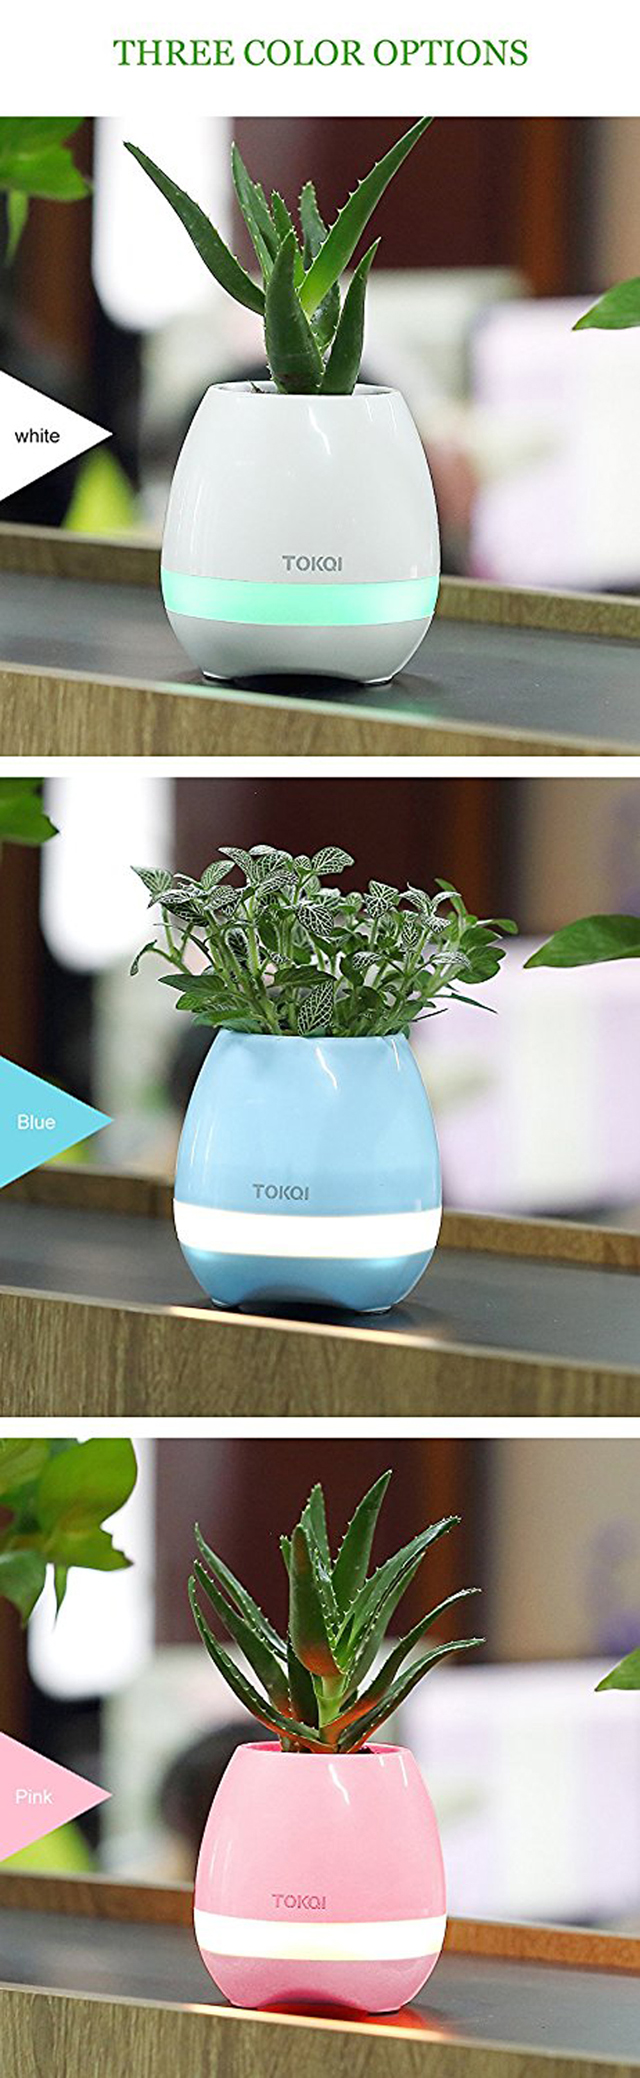 Factory Wholesale waterproof bluetooth speaker Led lamp singing smart music flowerpot